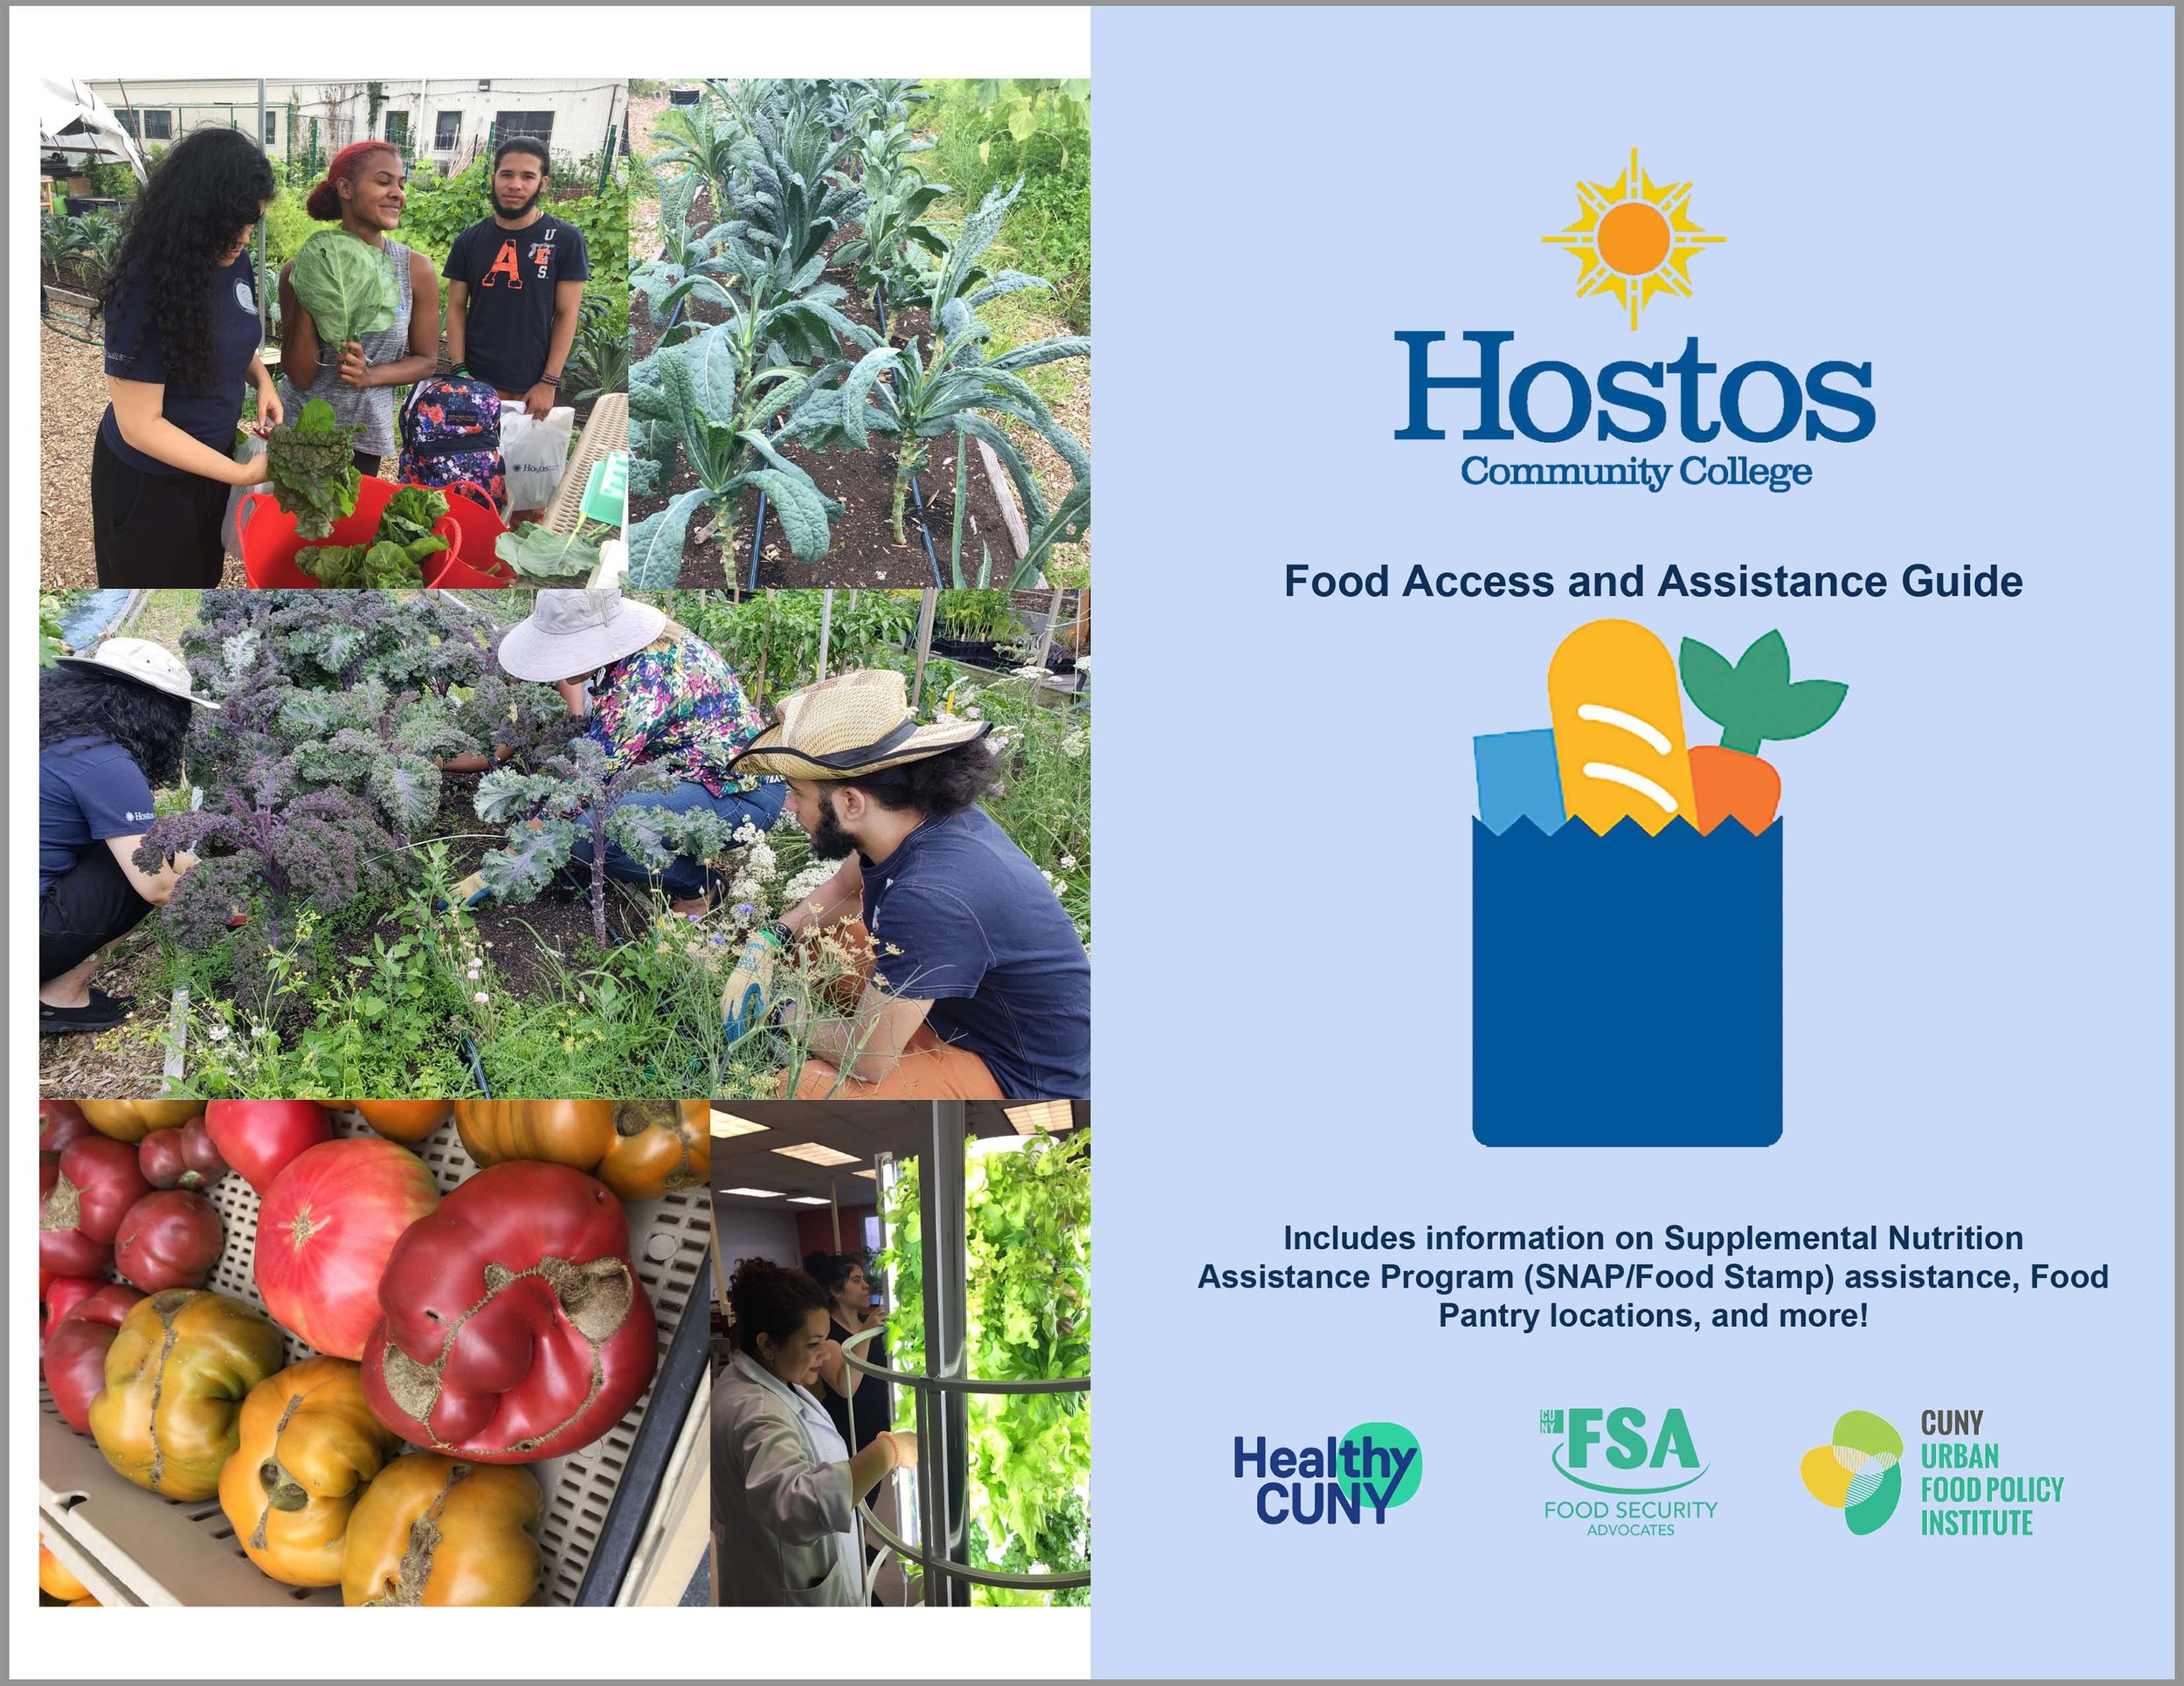 2018 Hostos Community College Food Access & Assistance Guide